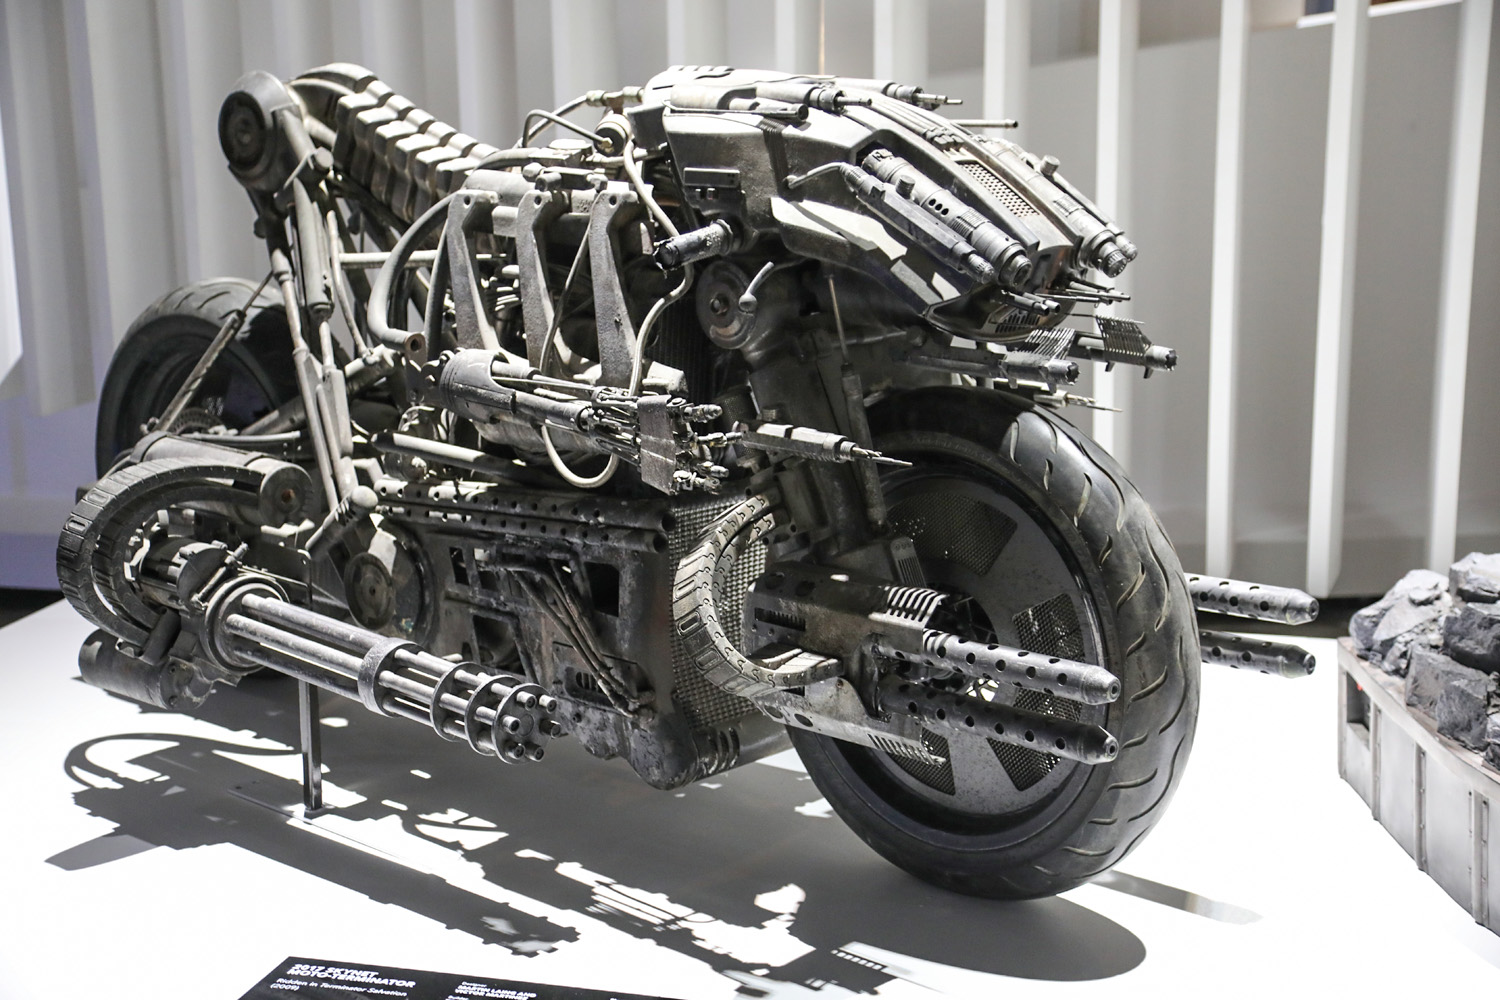 Hollywood Dream Machines: Vehicles of Science Fiction and Fantasy Petersen Automotive Museum motorcycle